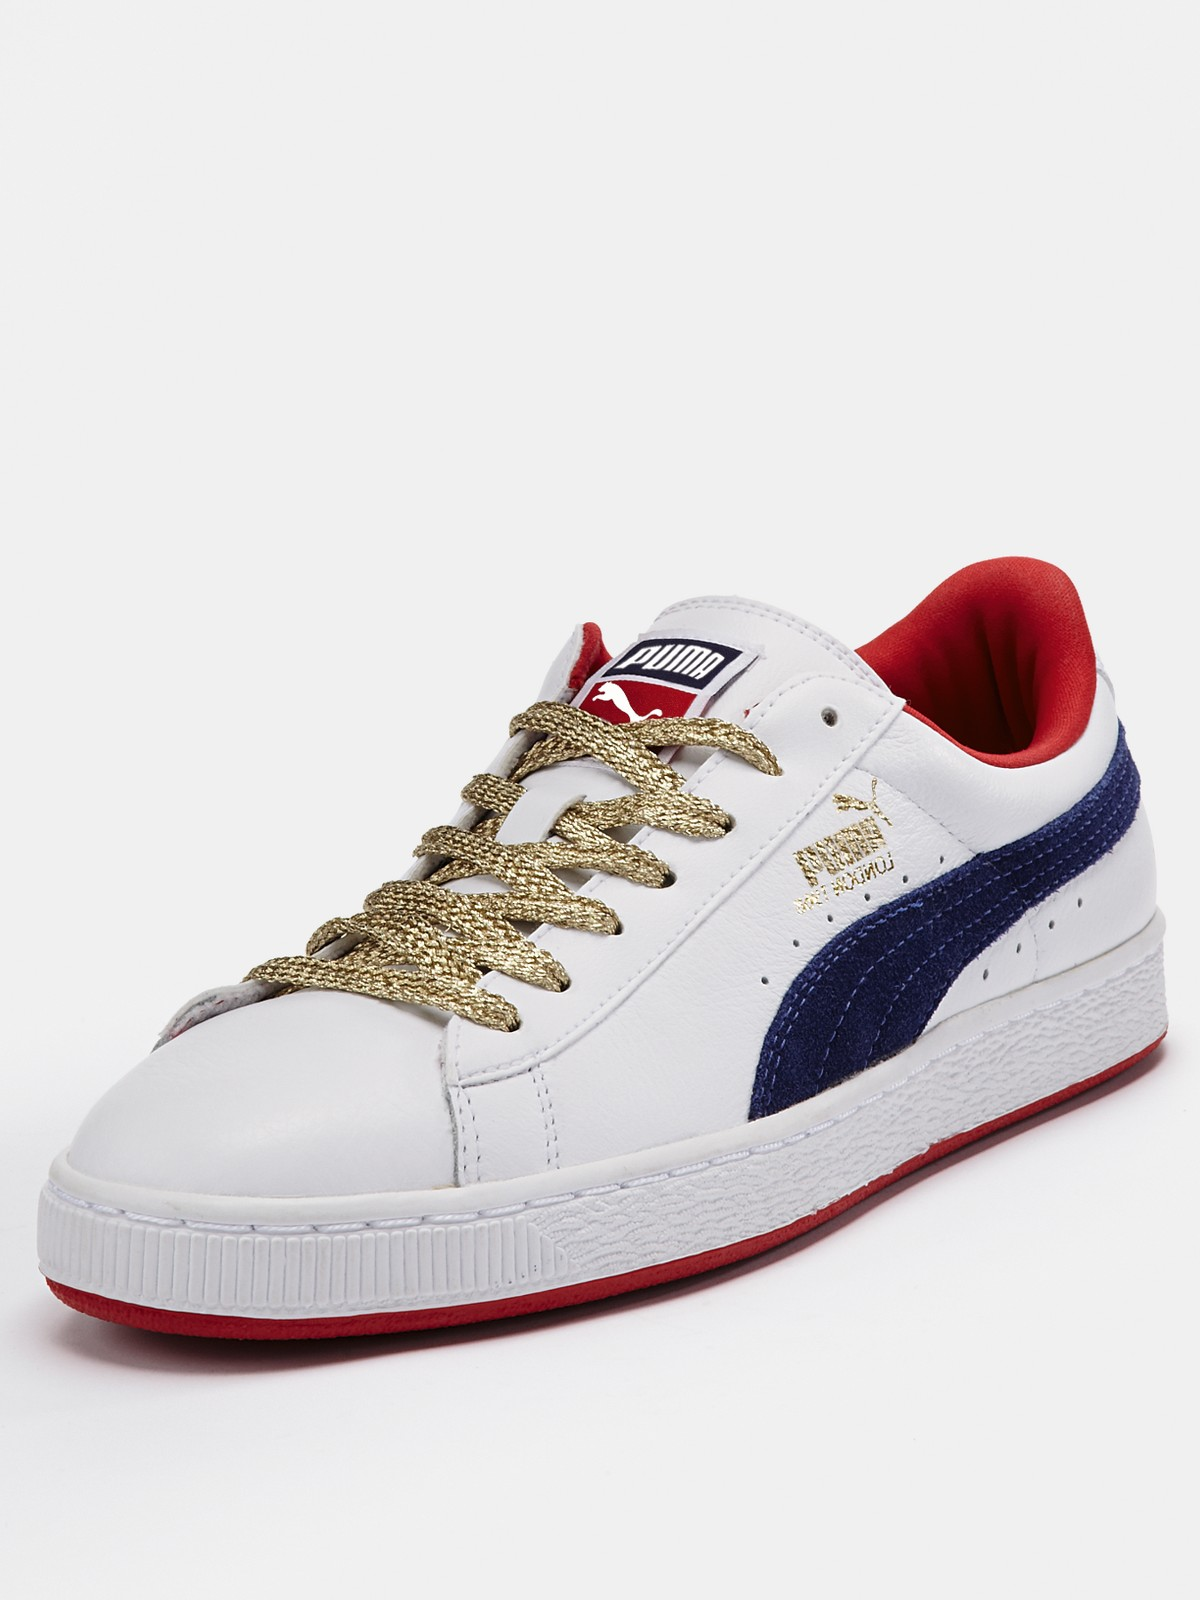 puma puma basket classic leather mens trainers in white for men white navy red lyst. Black Bedroom Furniture Sets. Home Design Ideas